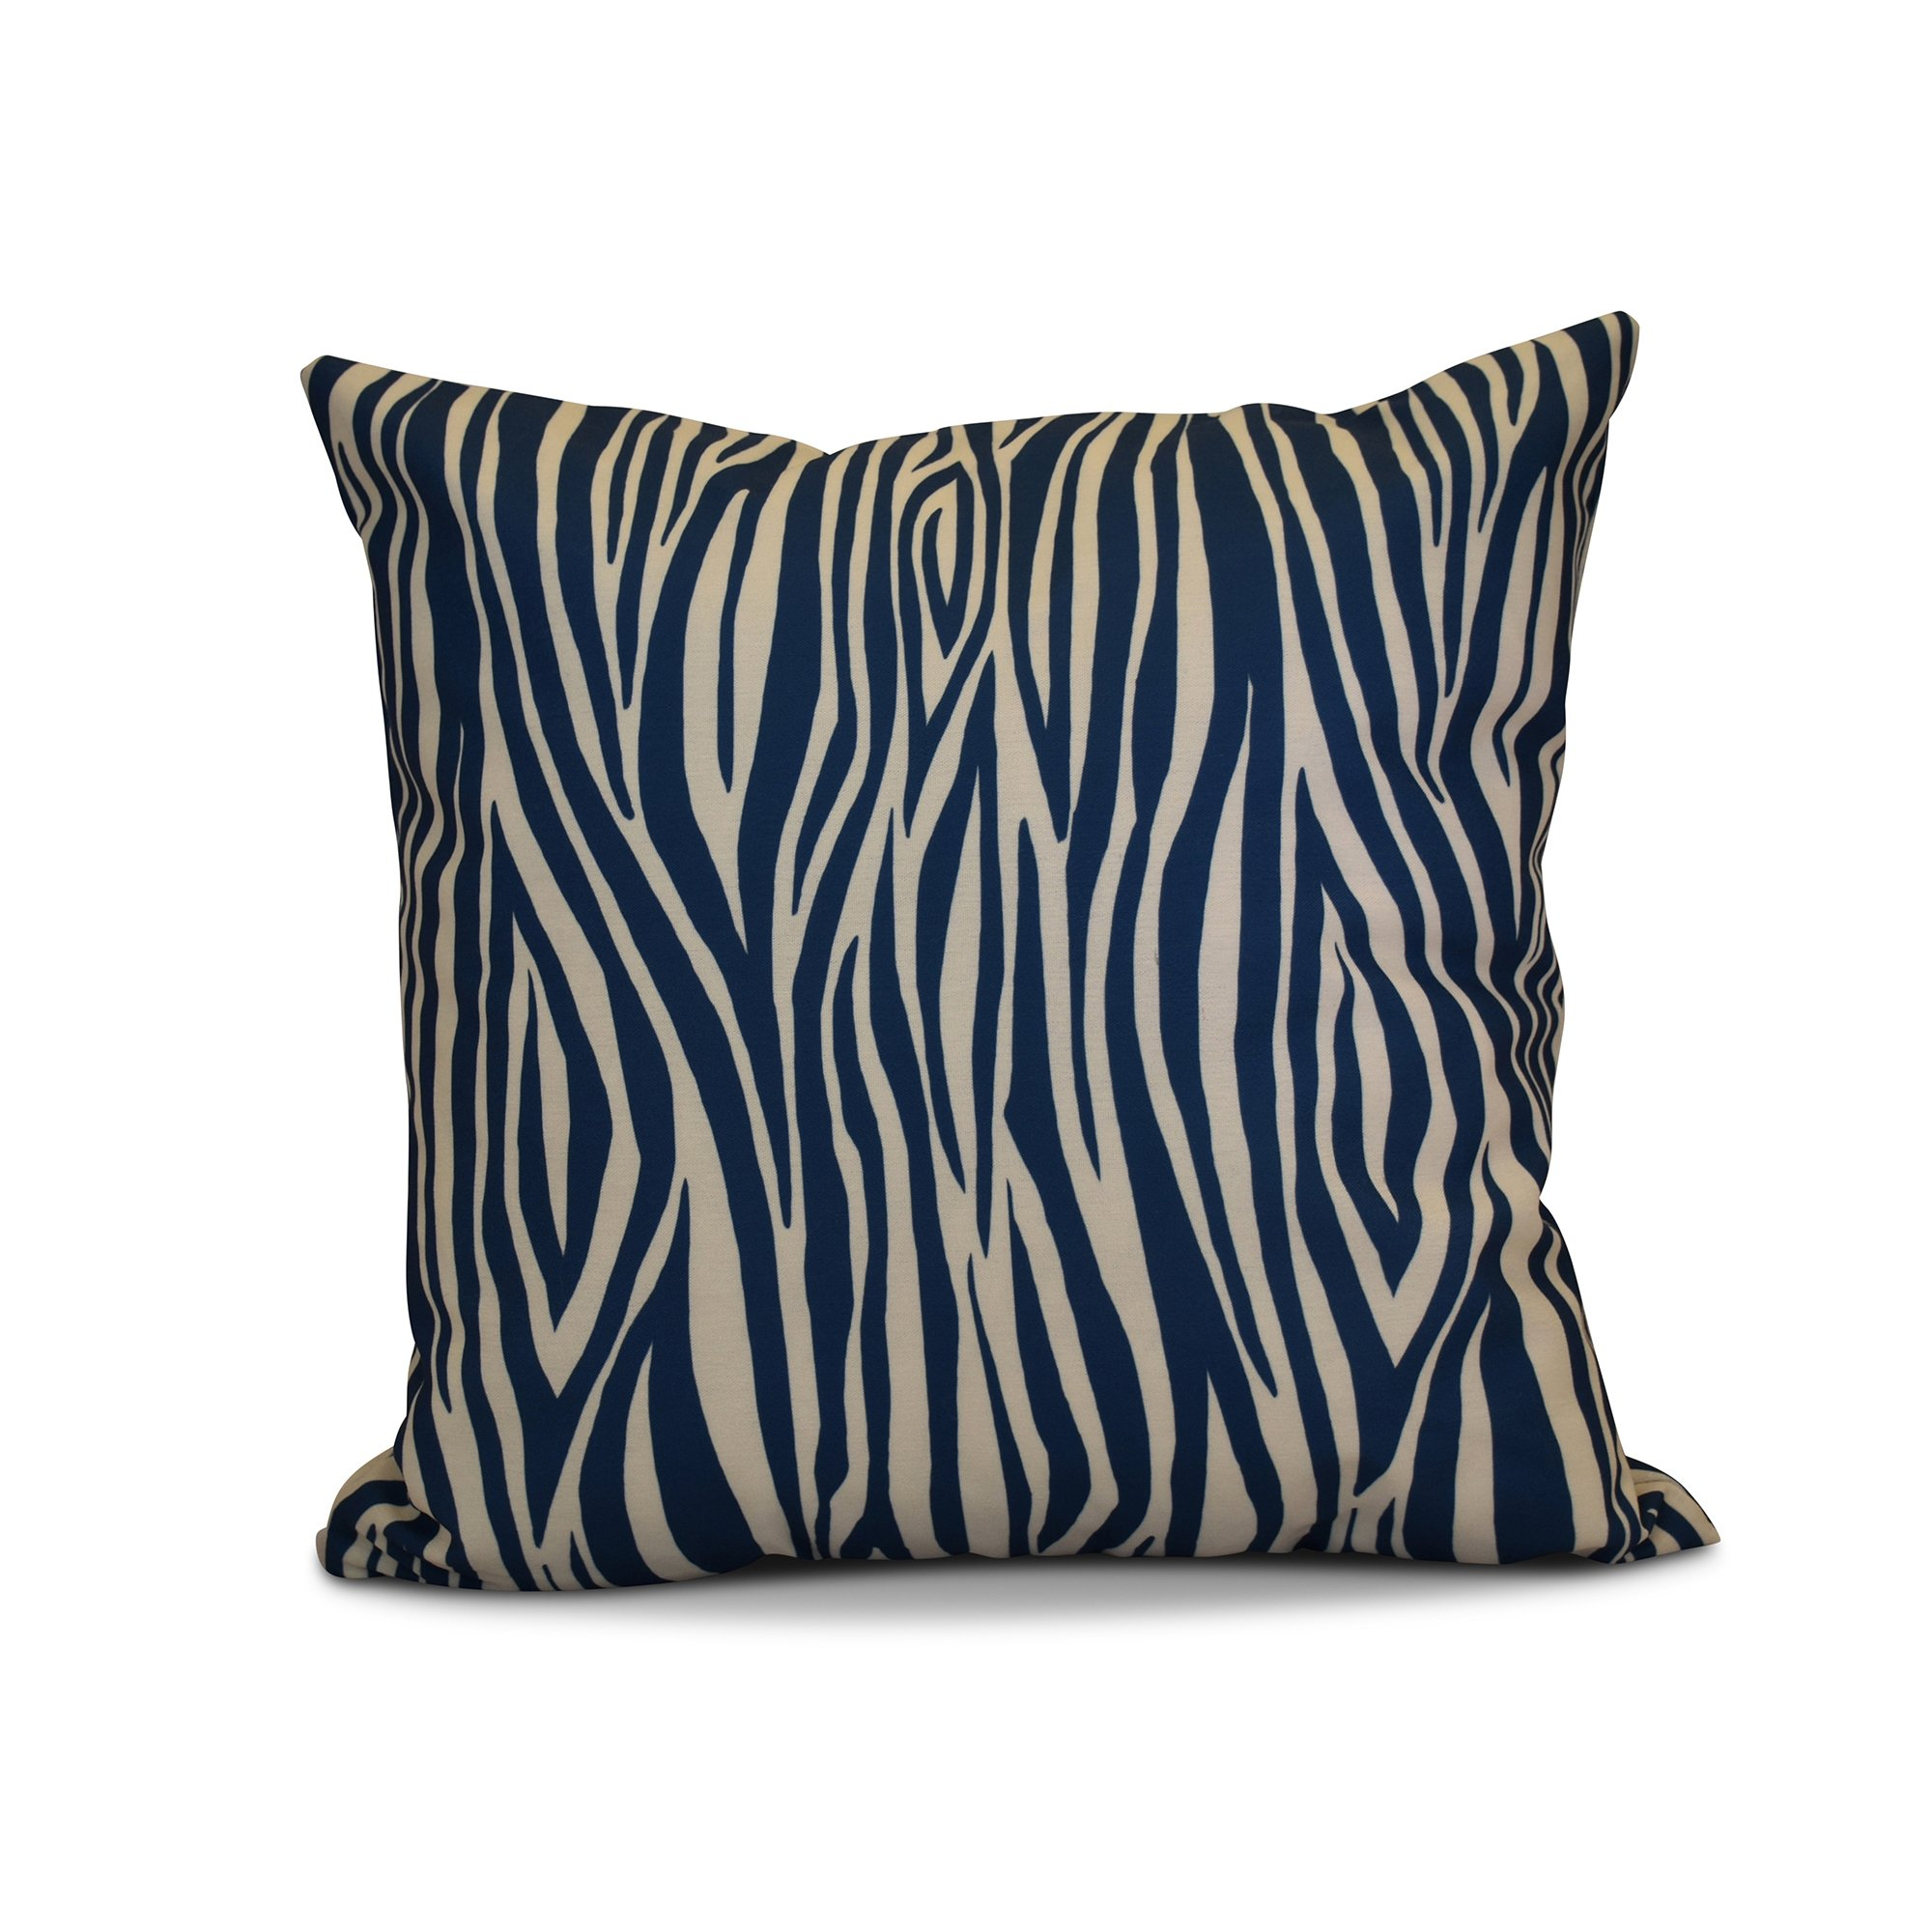 E by design 16 x 16-inch, Wood Stripe, Geometric Print Pillow, Navy Blue by E by design (Image #1)